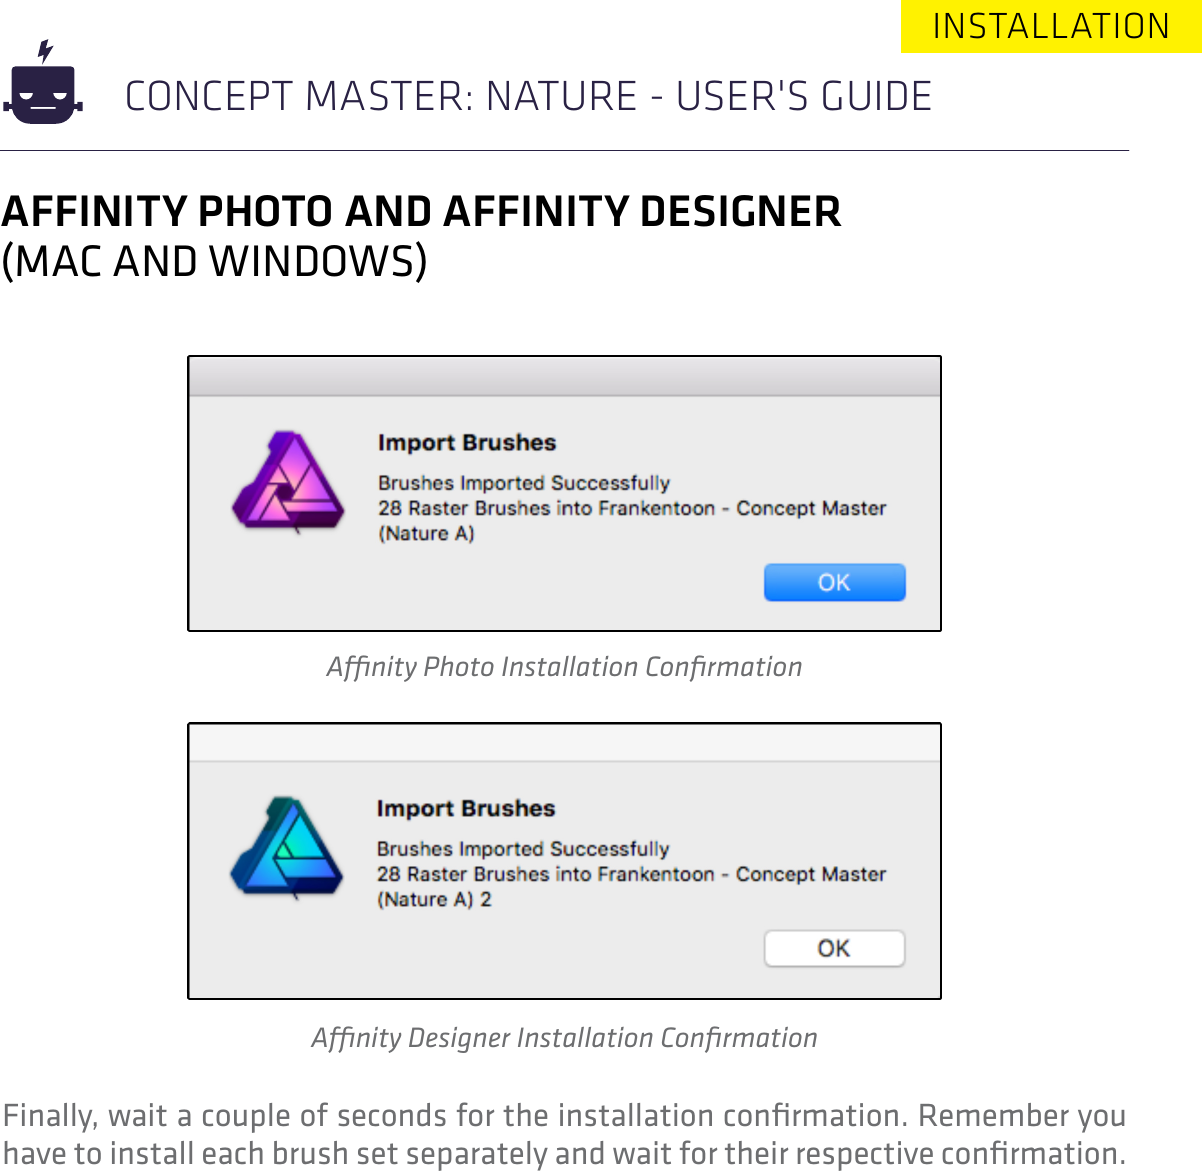 Concept Master Nature User's Guide users